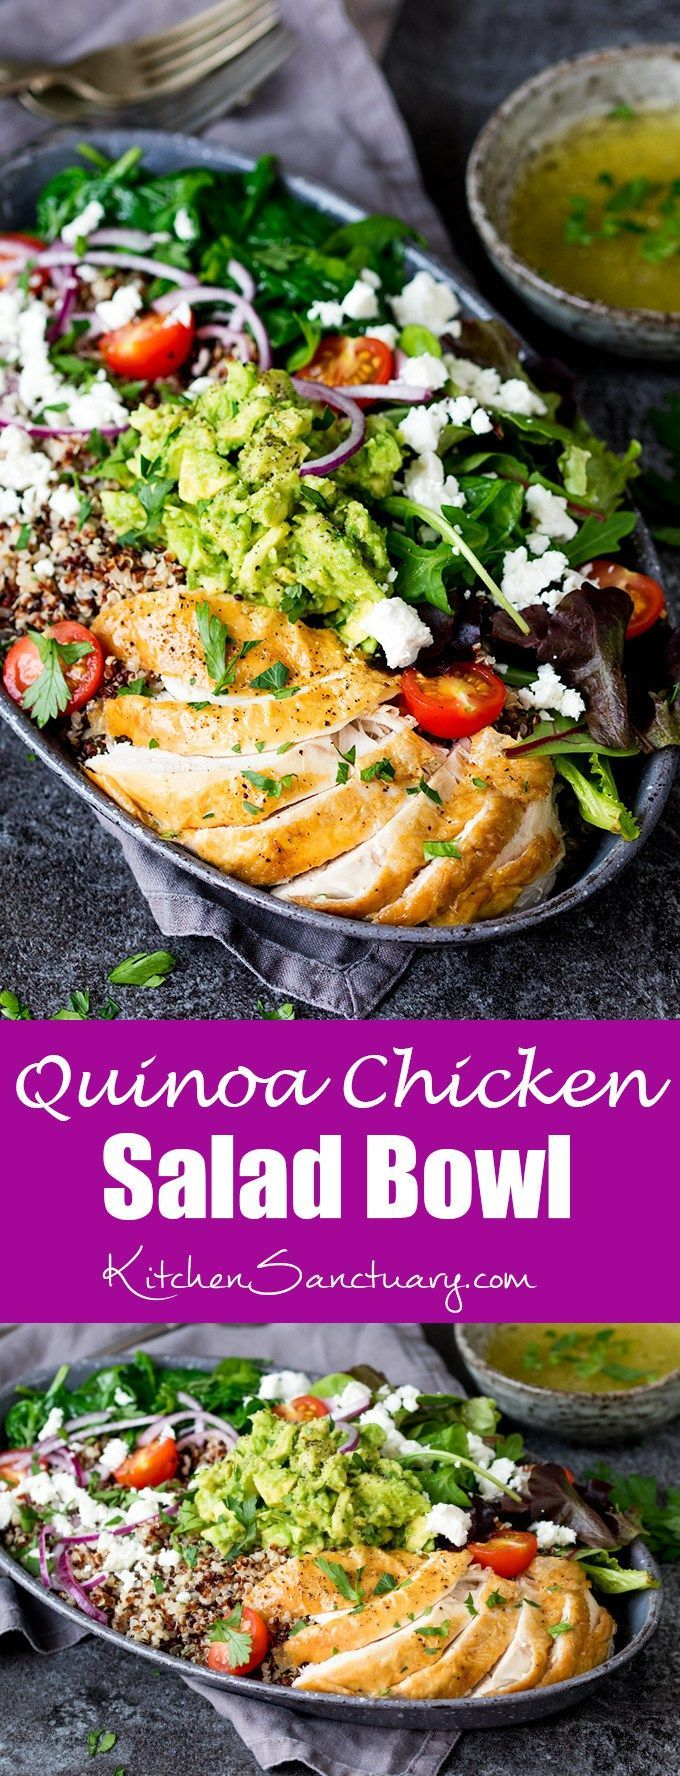 This chicken and quinoa salad makes a fantastic energy-boosting lunch!